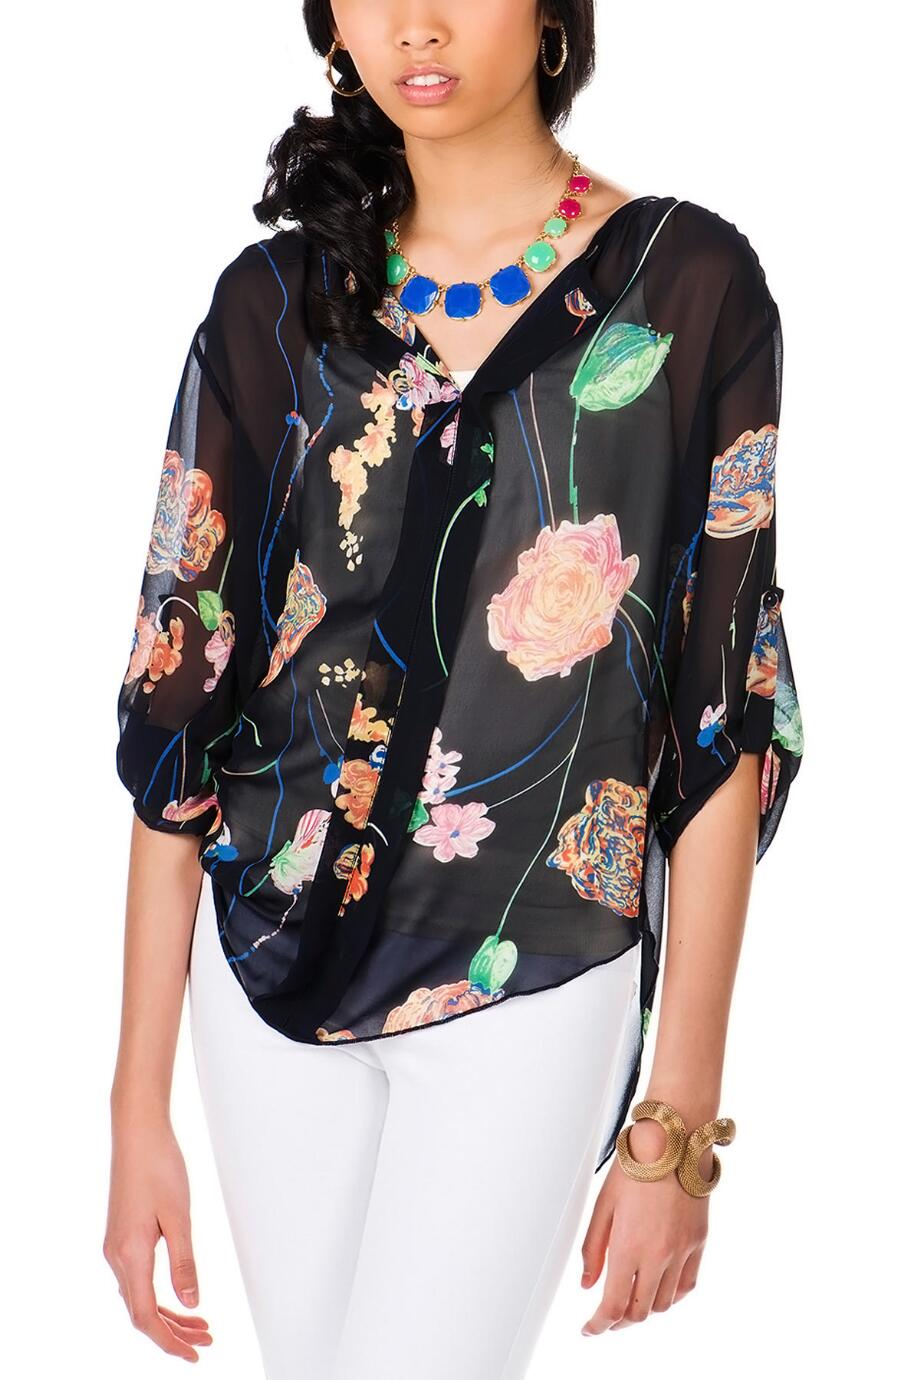 Haight-Ashbury Floral Top